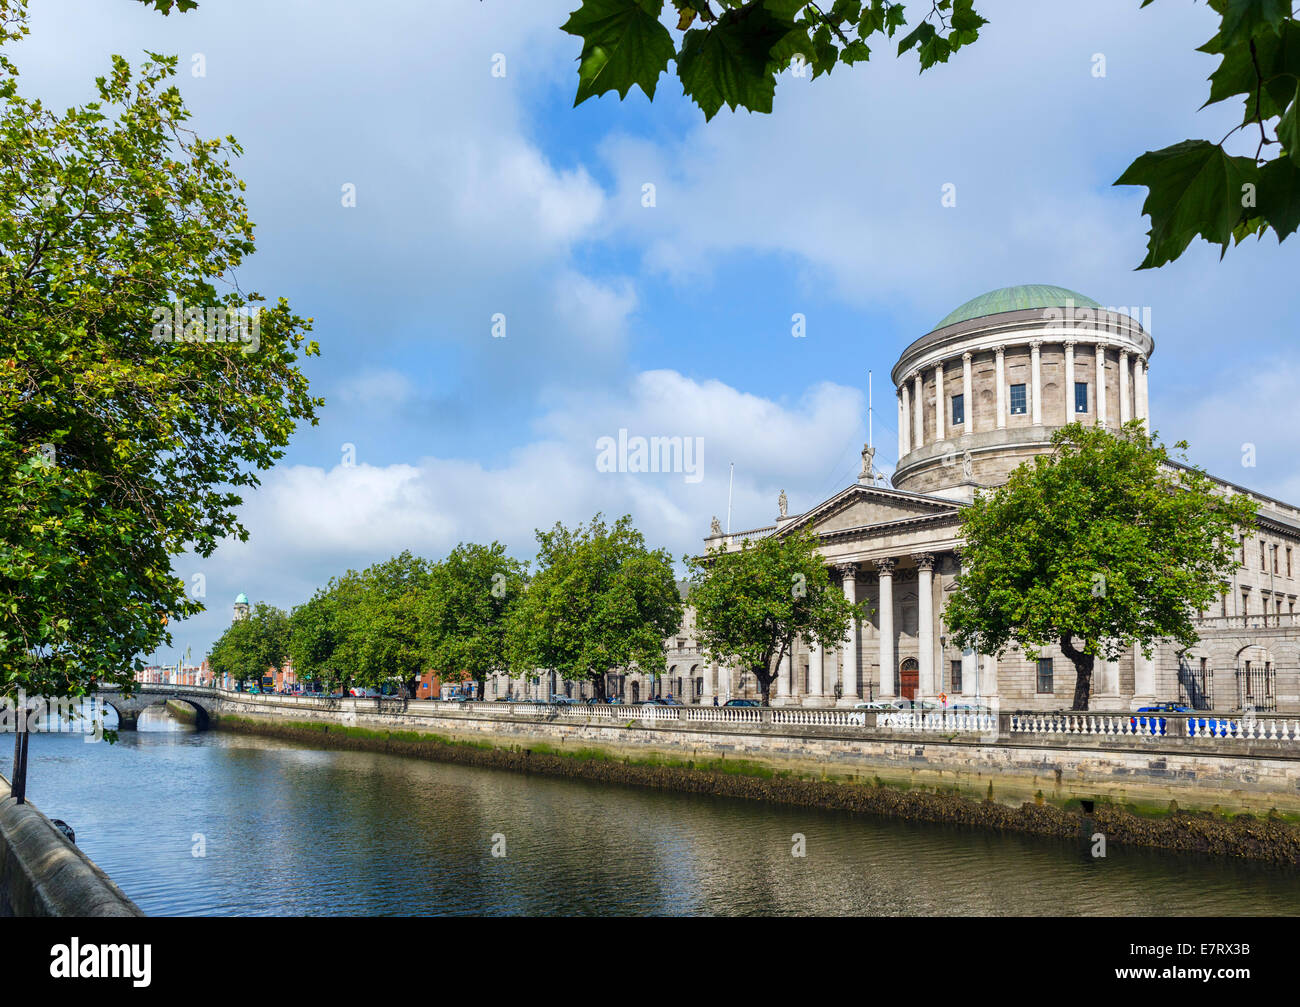 The Four Courts on Inns Quay viewed over the River Liffey, Dublin City, Republic of Ireland - Stock Image